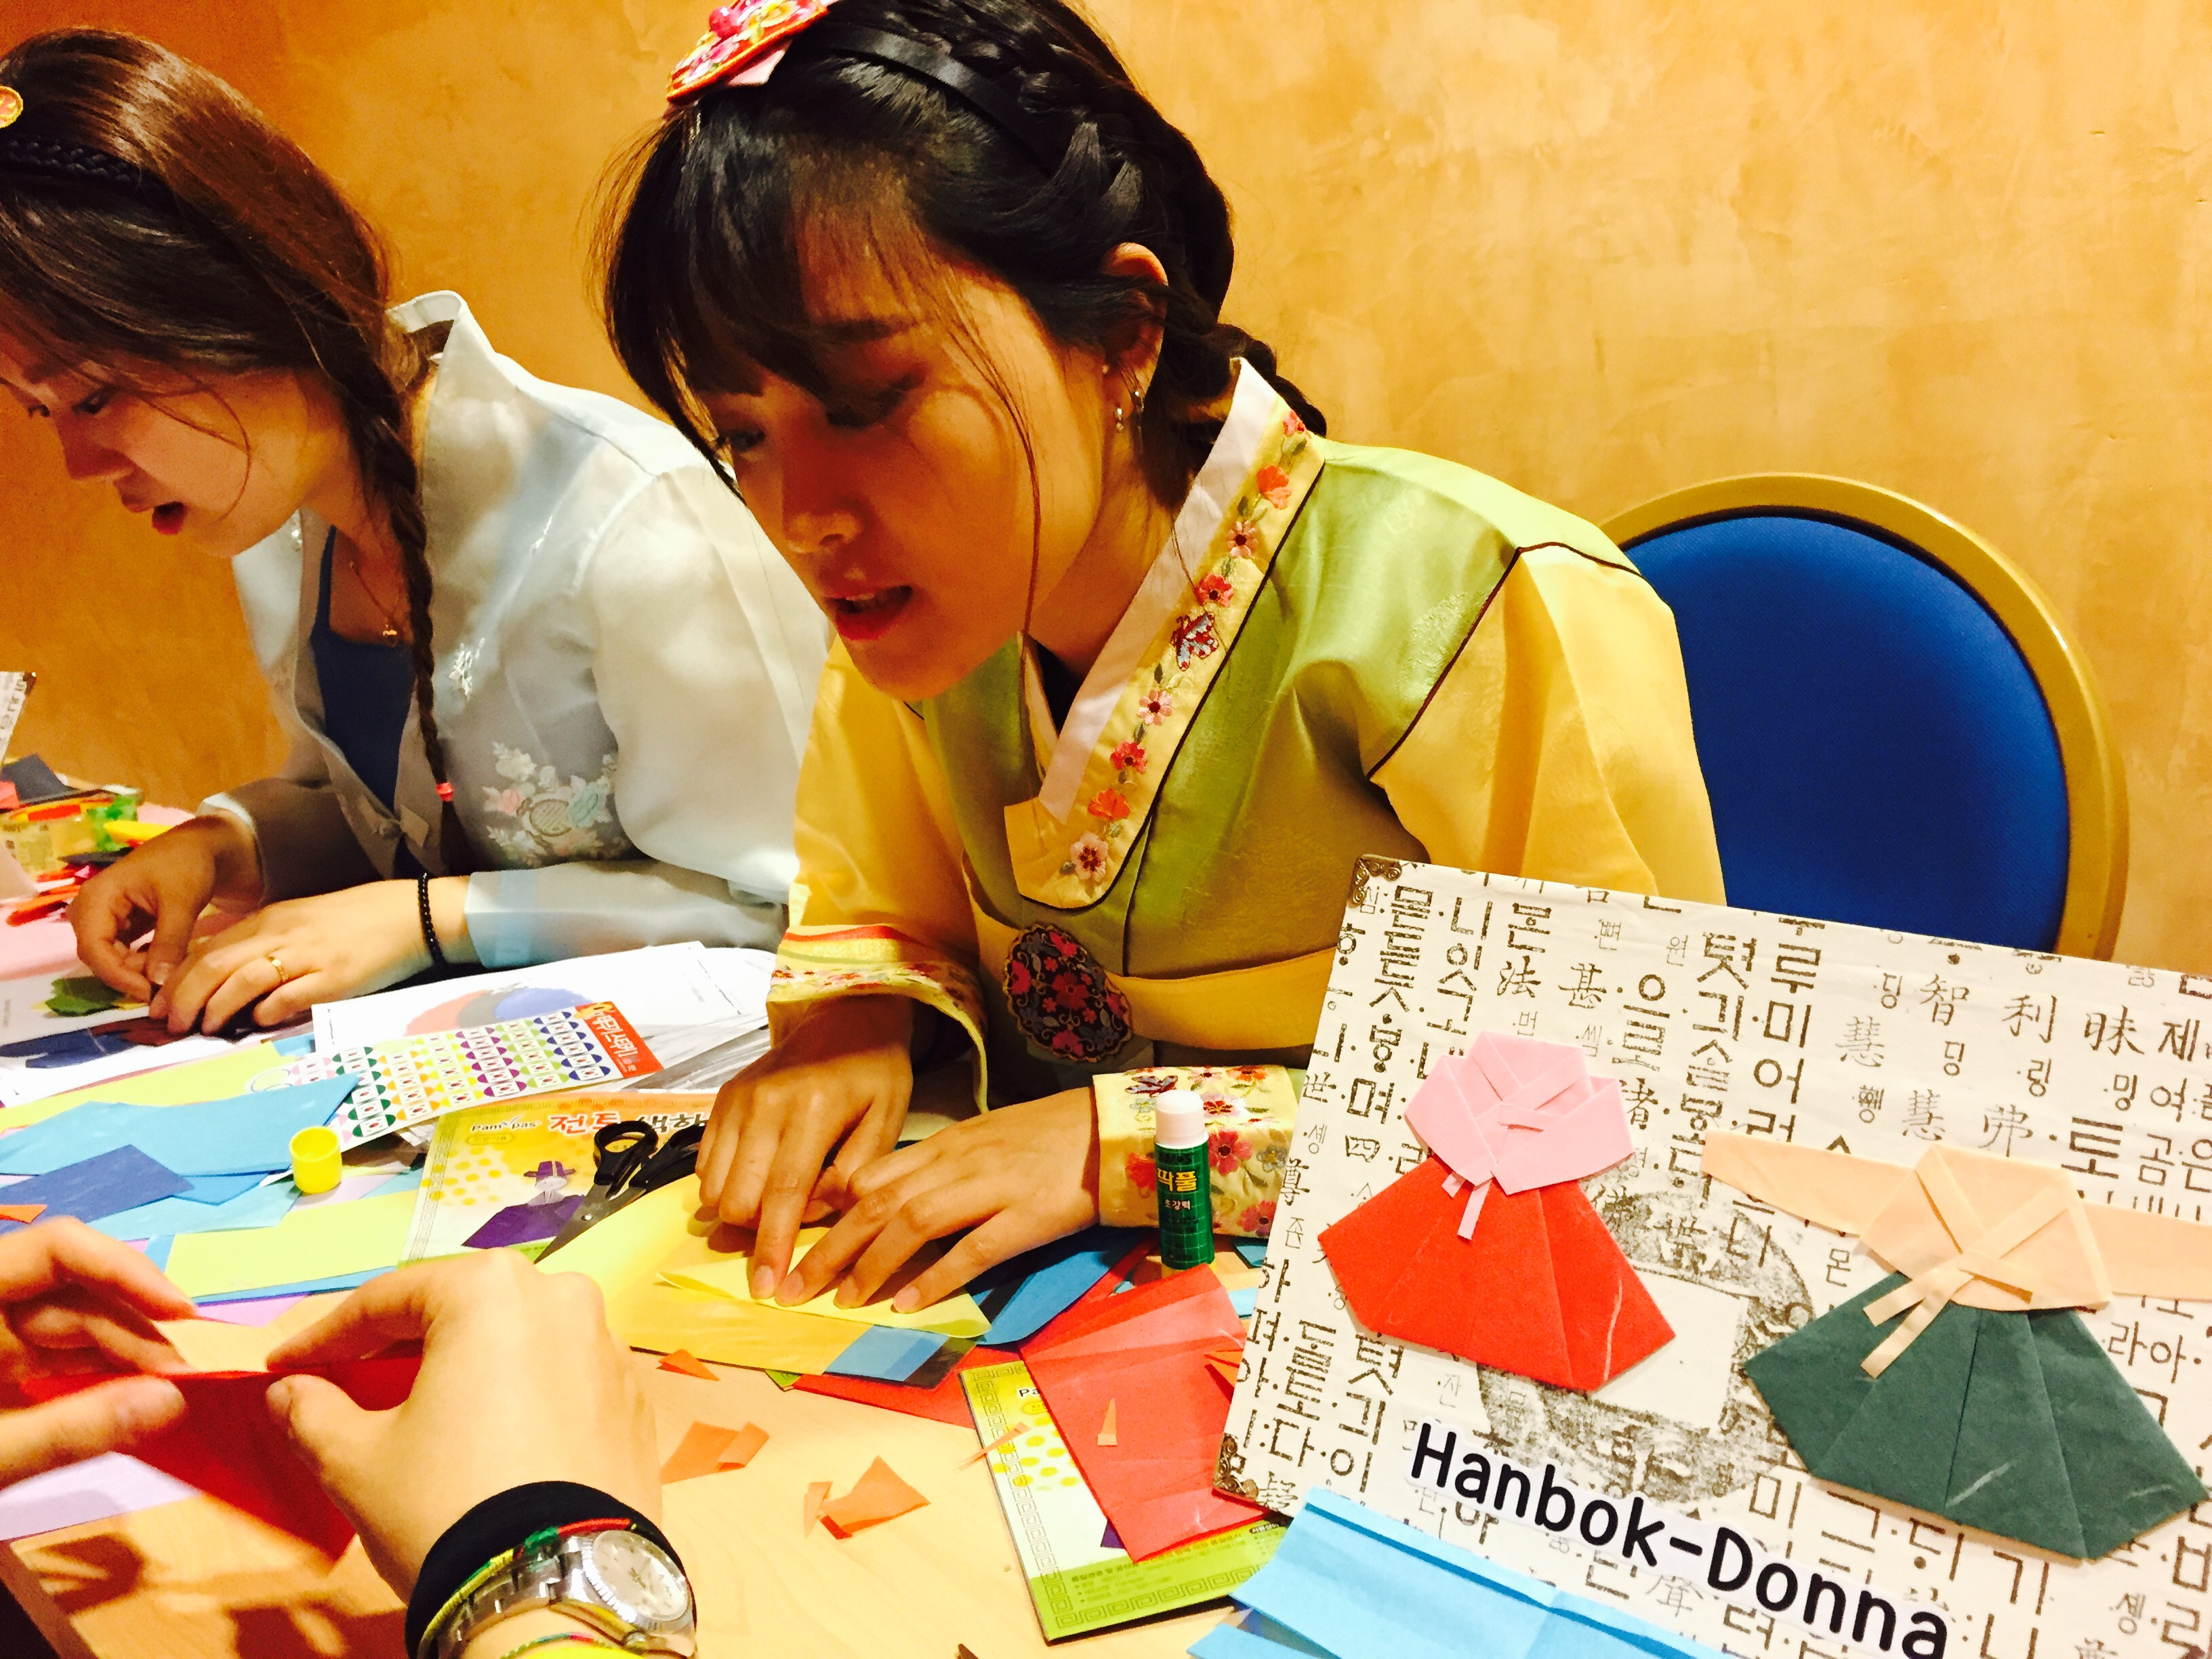 Say Hanbok – the traditional Korean dress